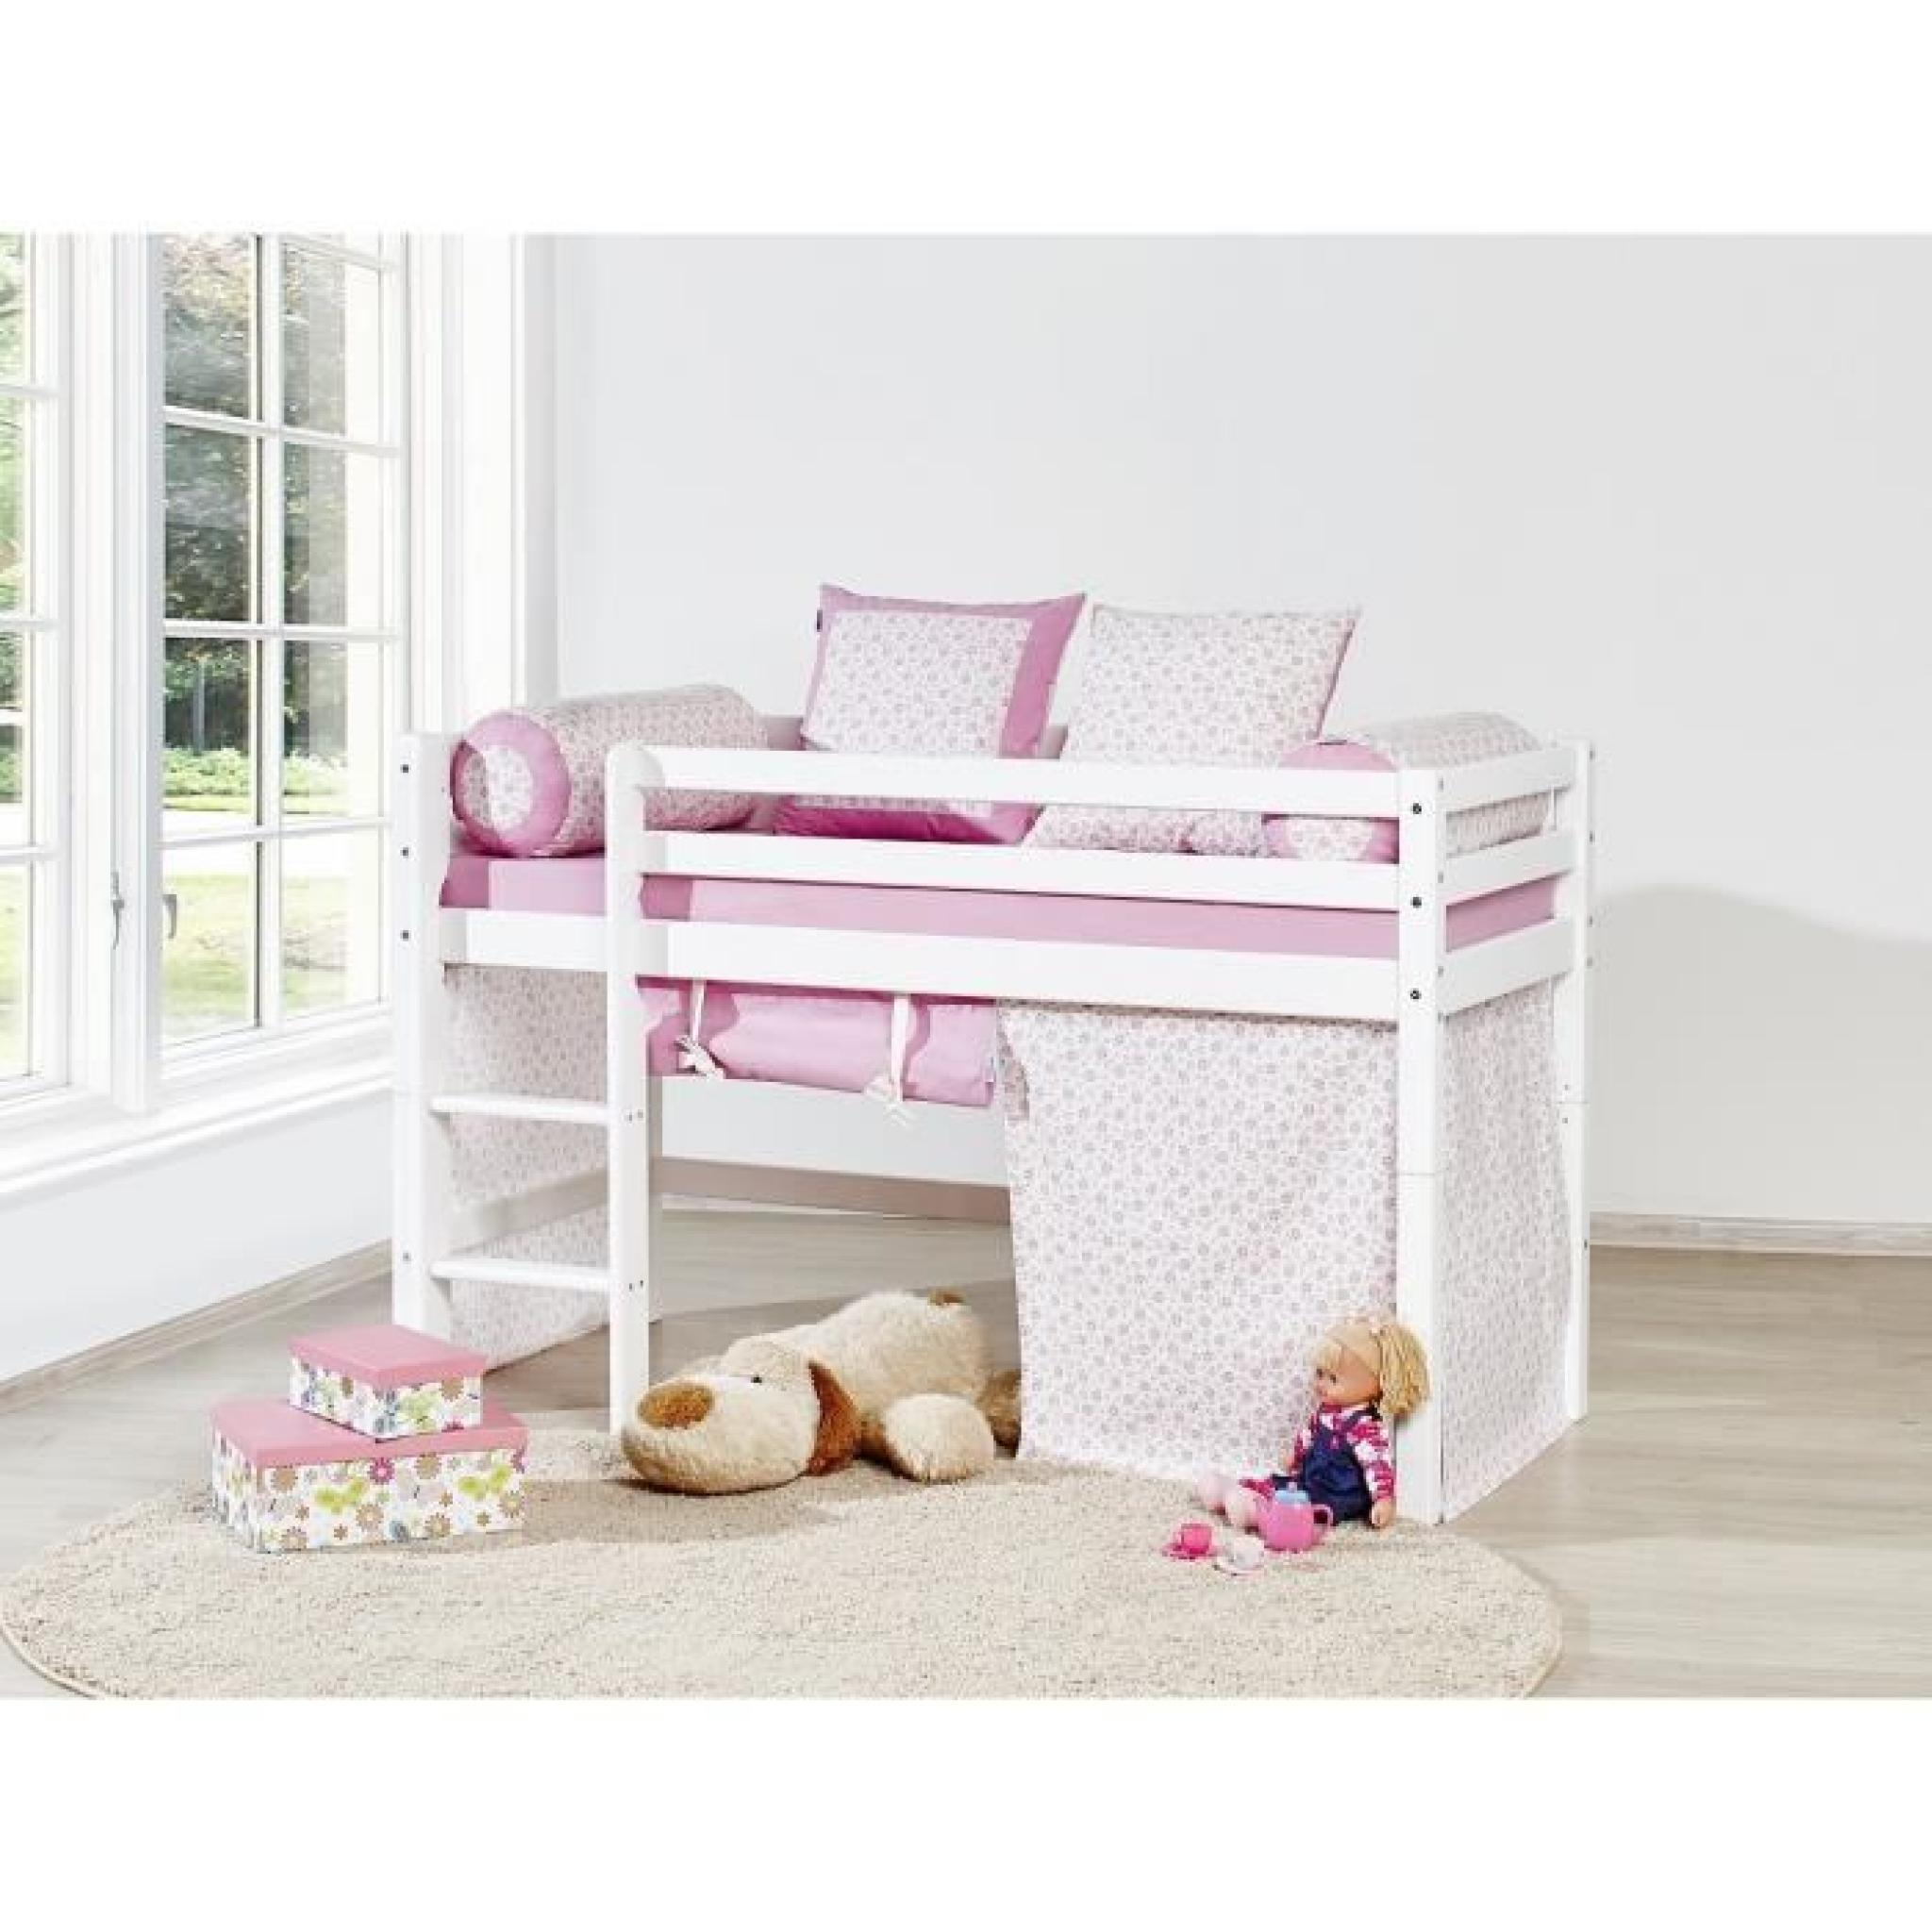 loop princesse lit superpos enfant 70x160cm blanc achat vente lit pas cher couleur et. Black Bedroom Furniture Sets. Home Design Ideas